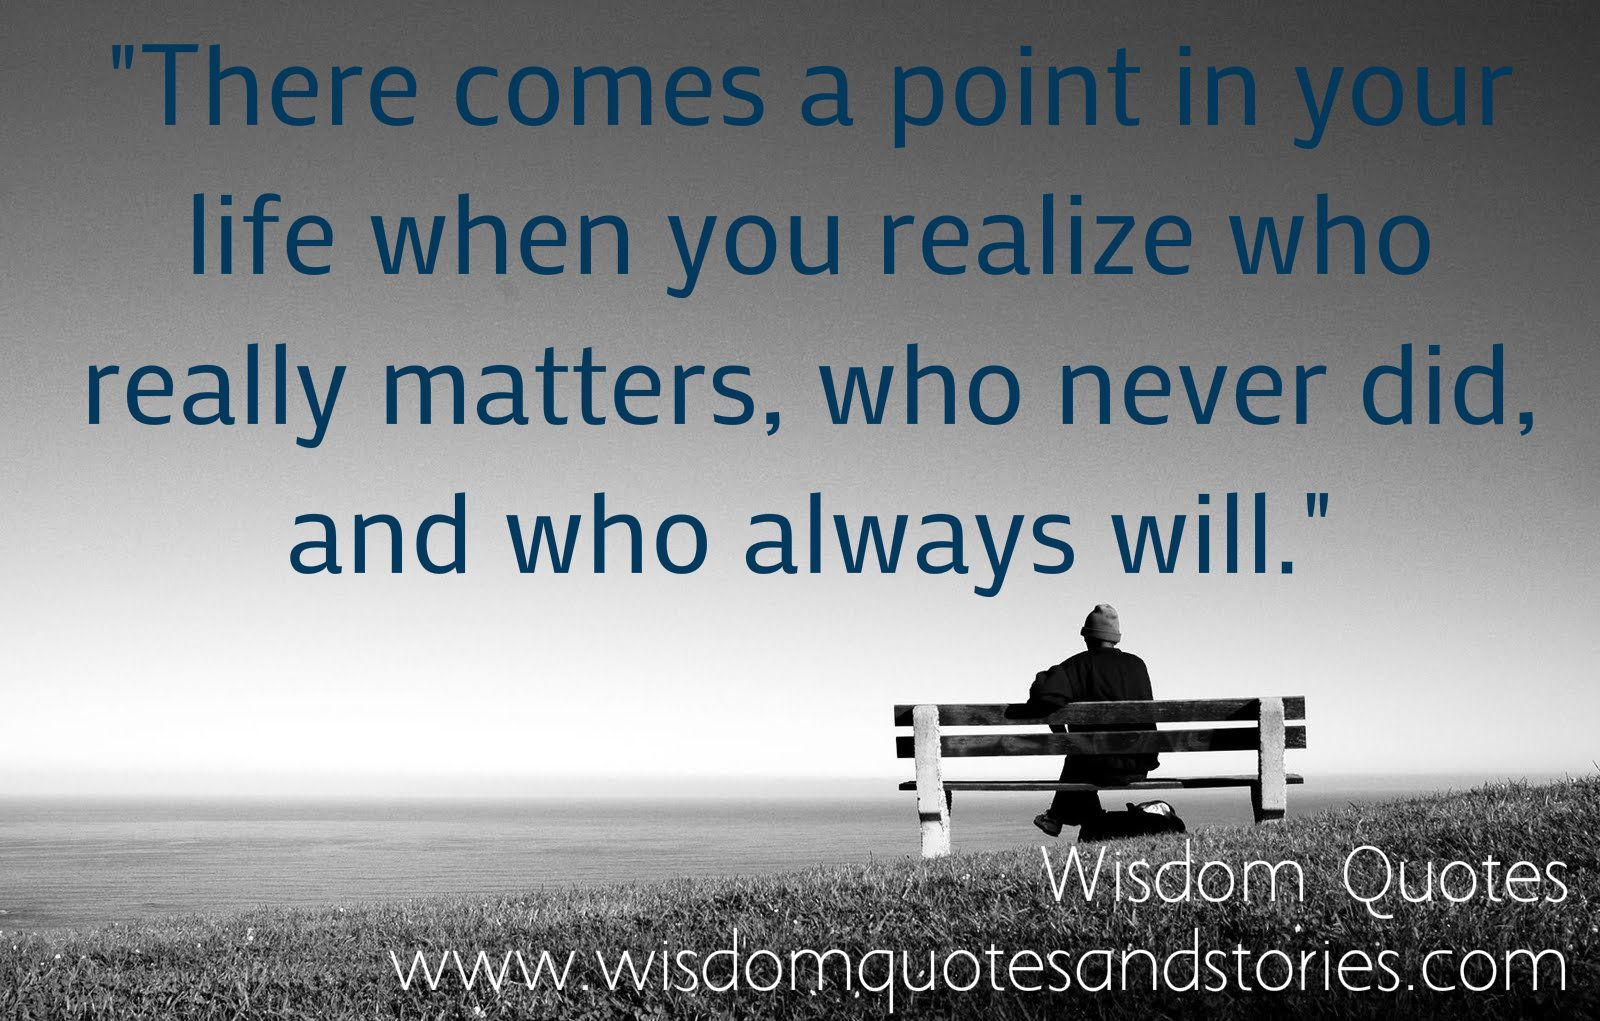 Pinterest Life Quotes: There Comes A Point In Your Life When You Realize Who